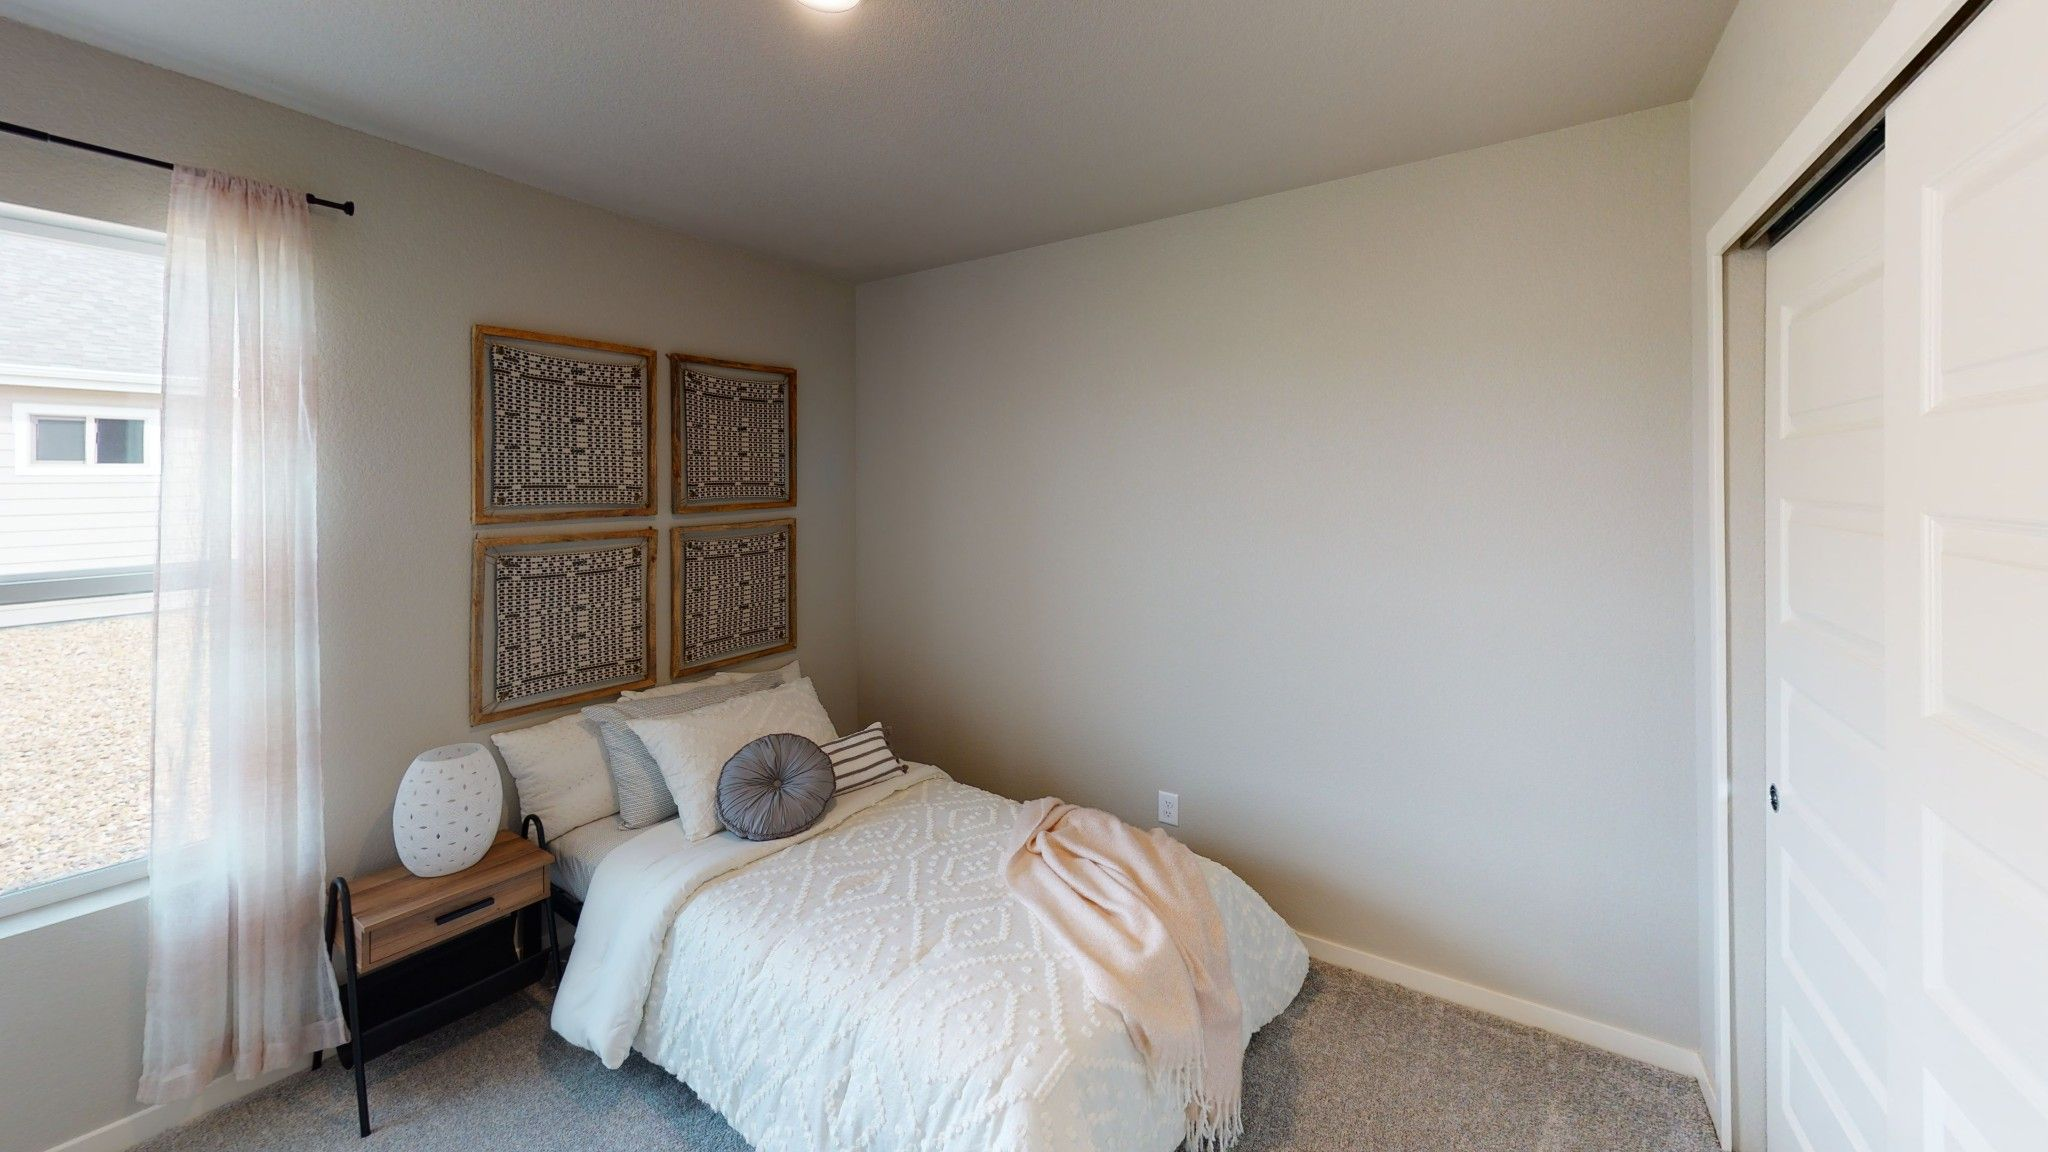 Bedroom featured in the Bristol By Baessler Homes in Greeley, CO